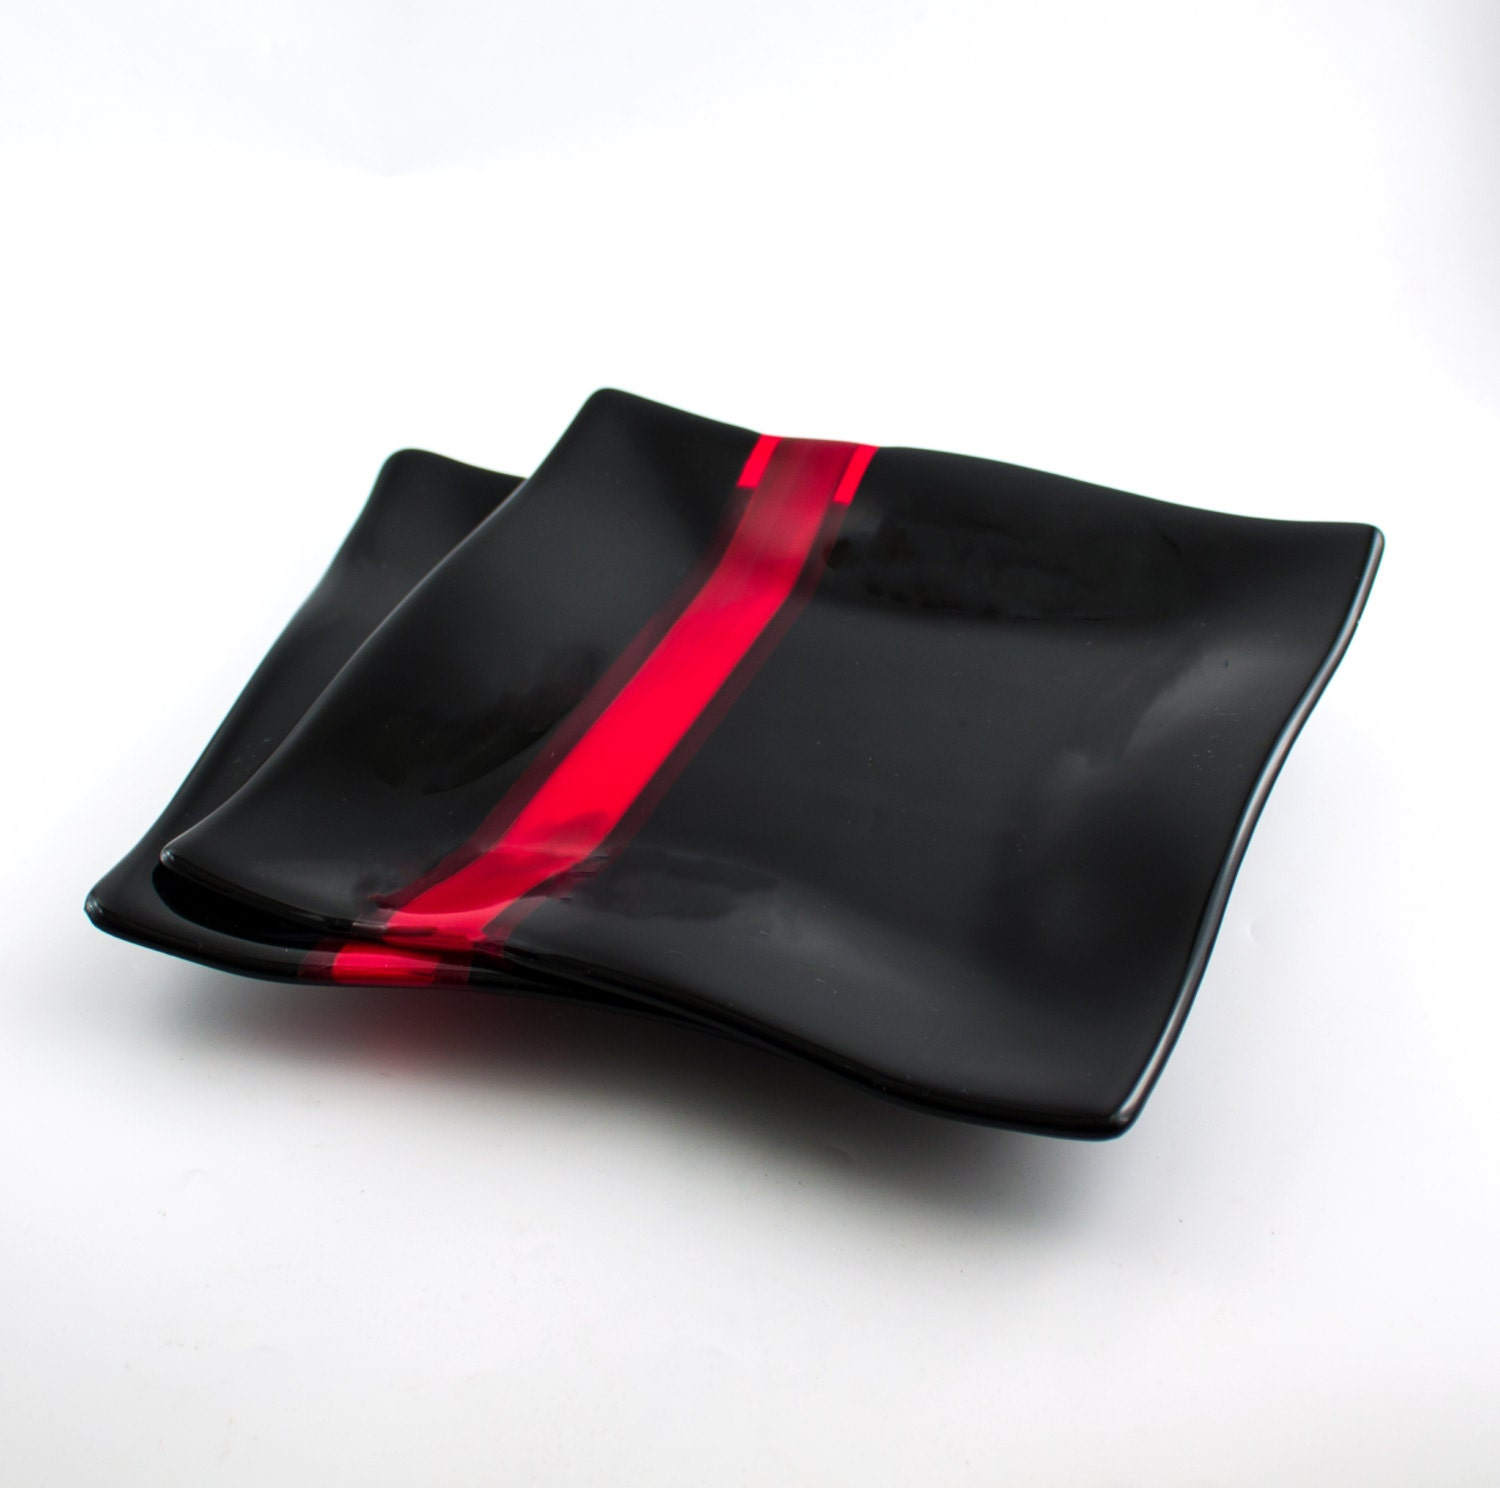 Black and Red Glass Dinnerware, Fused Glass Dinner Plates, Square Plates,  Modern Design, Unique Wedding Gift for Couples